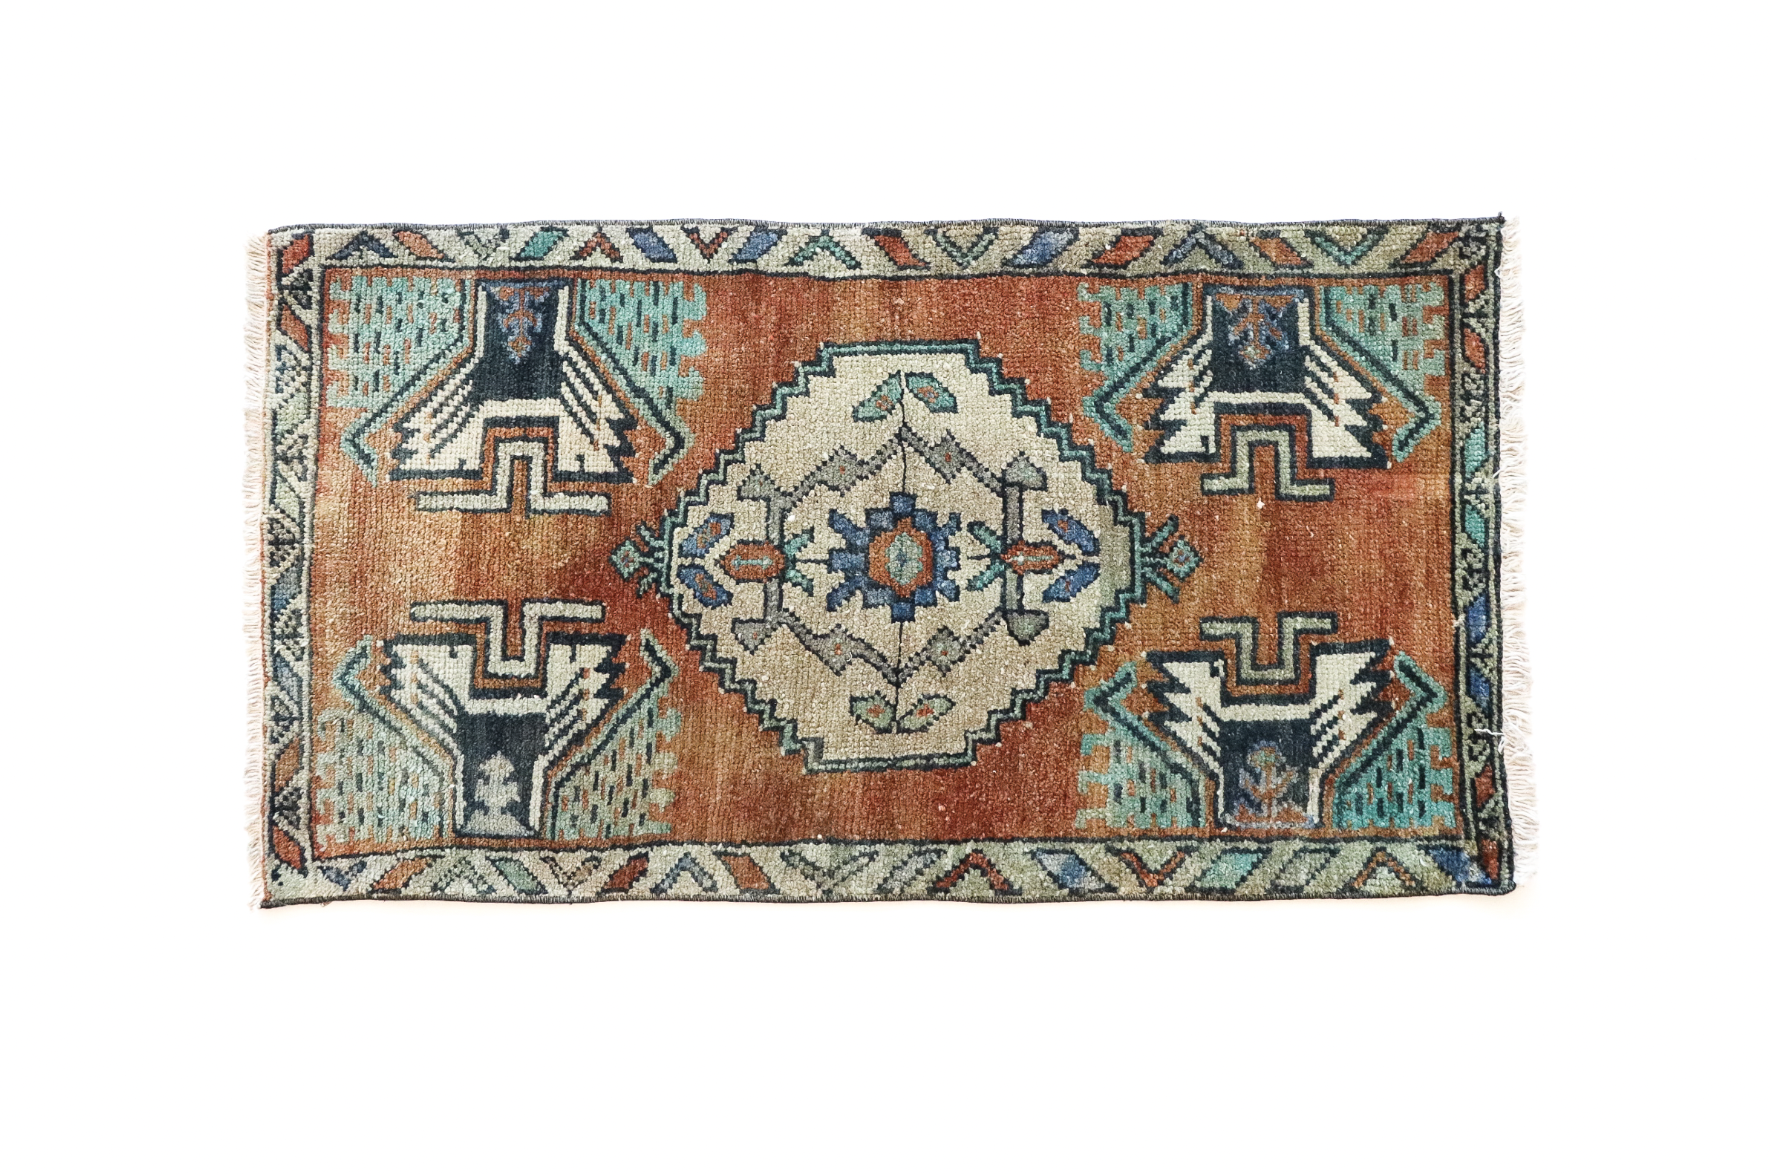 Handmade Vintage Turkish Kilim Rug - Orange and Green